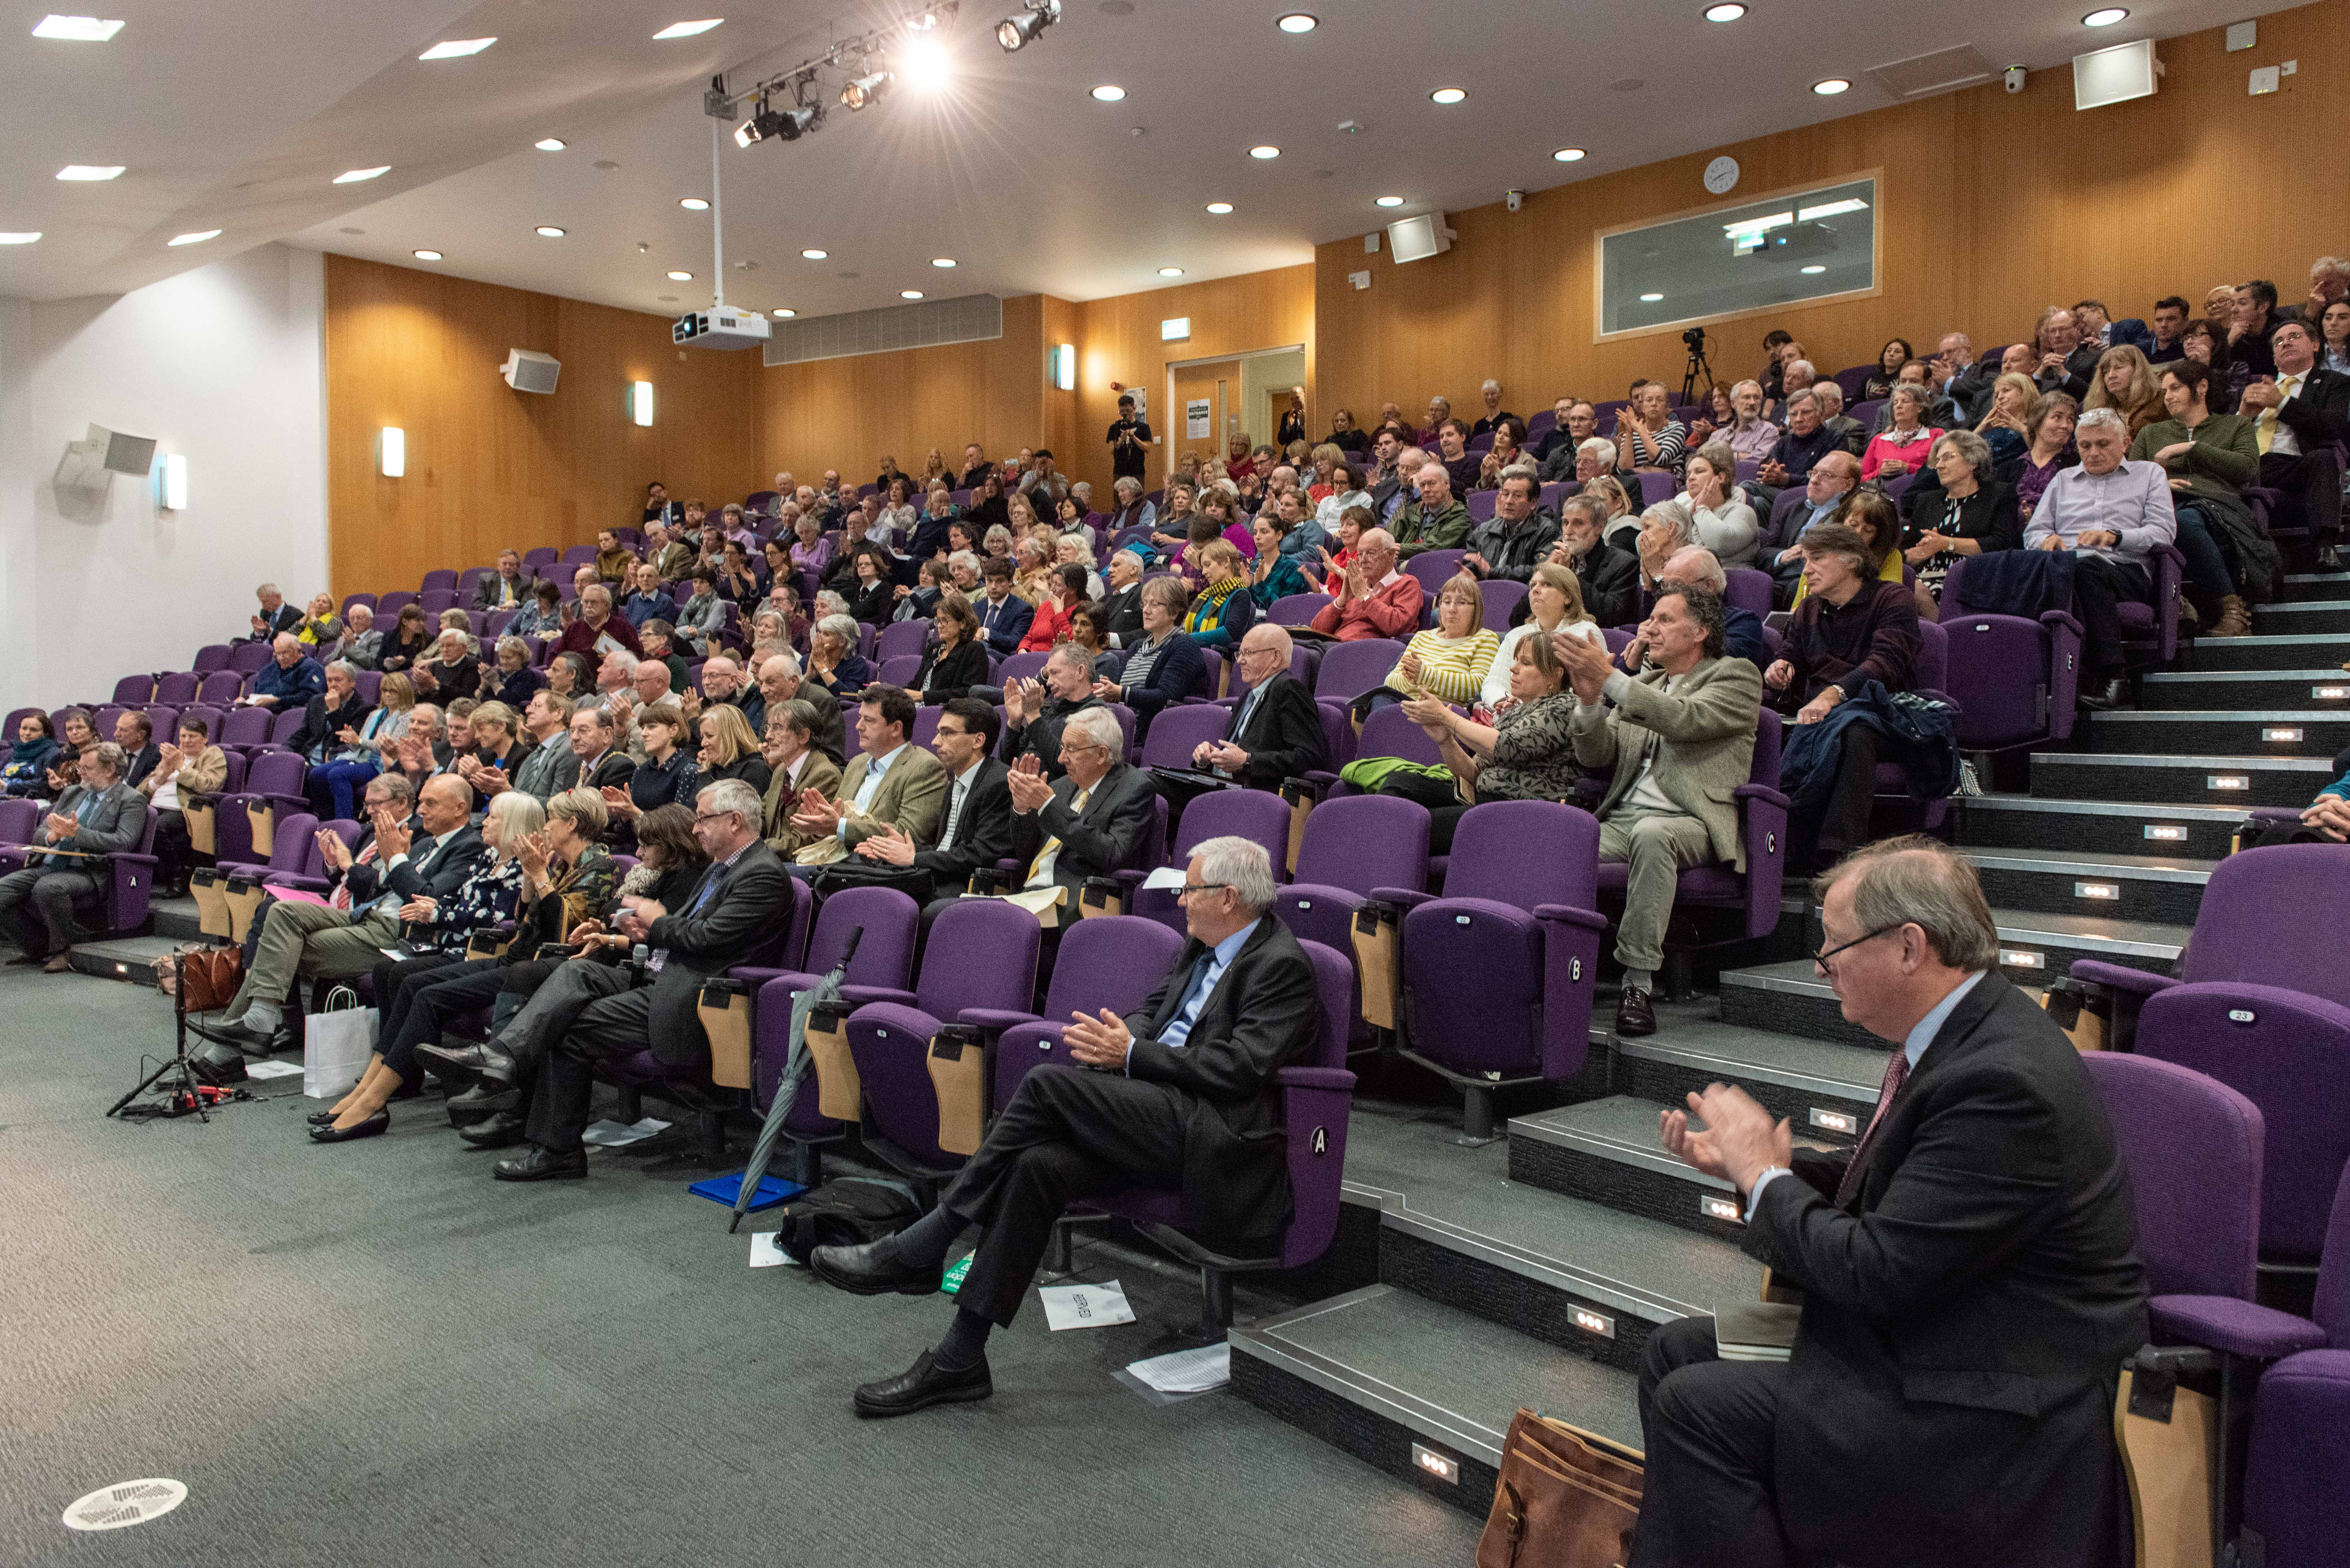 University of Surrey Lecture Theatre